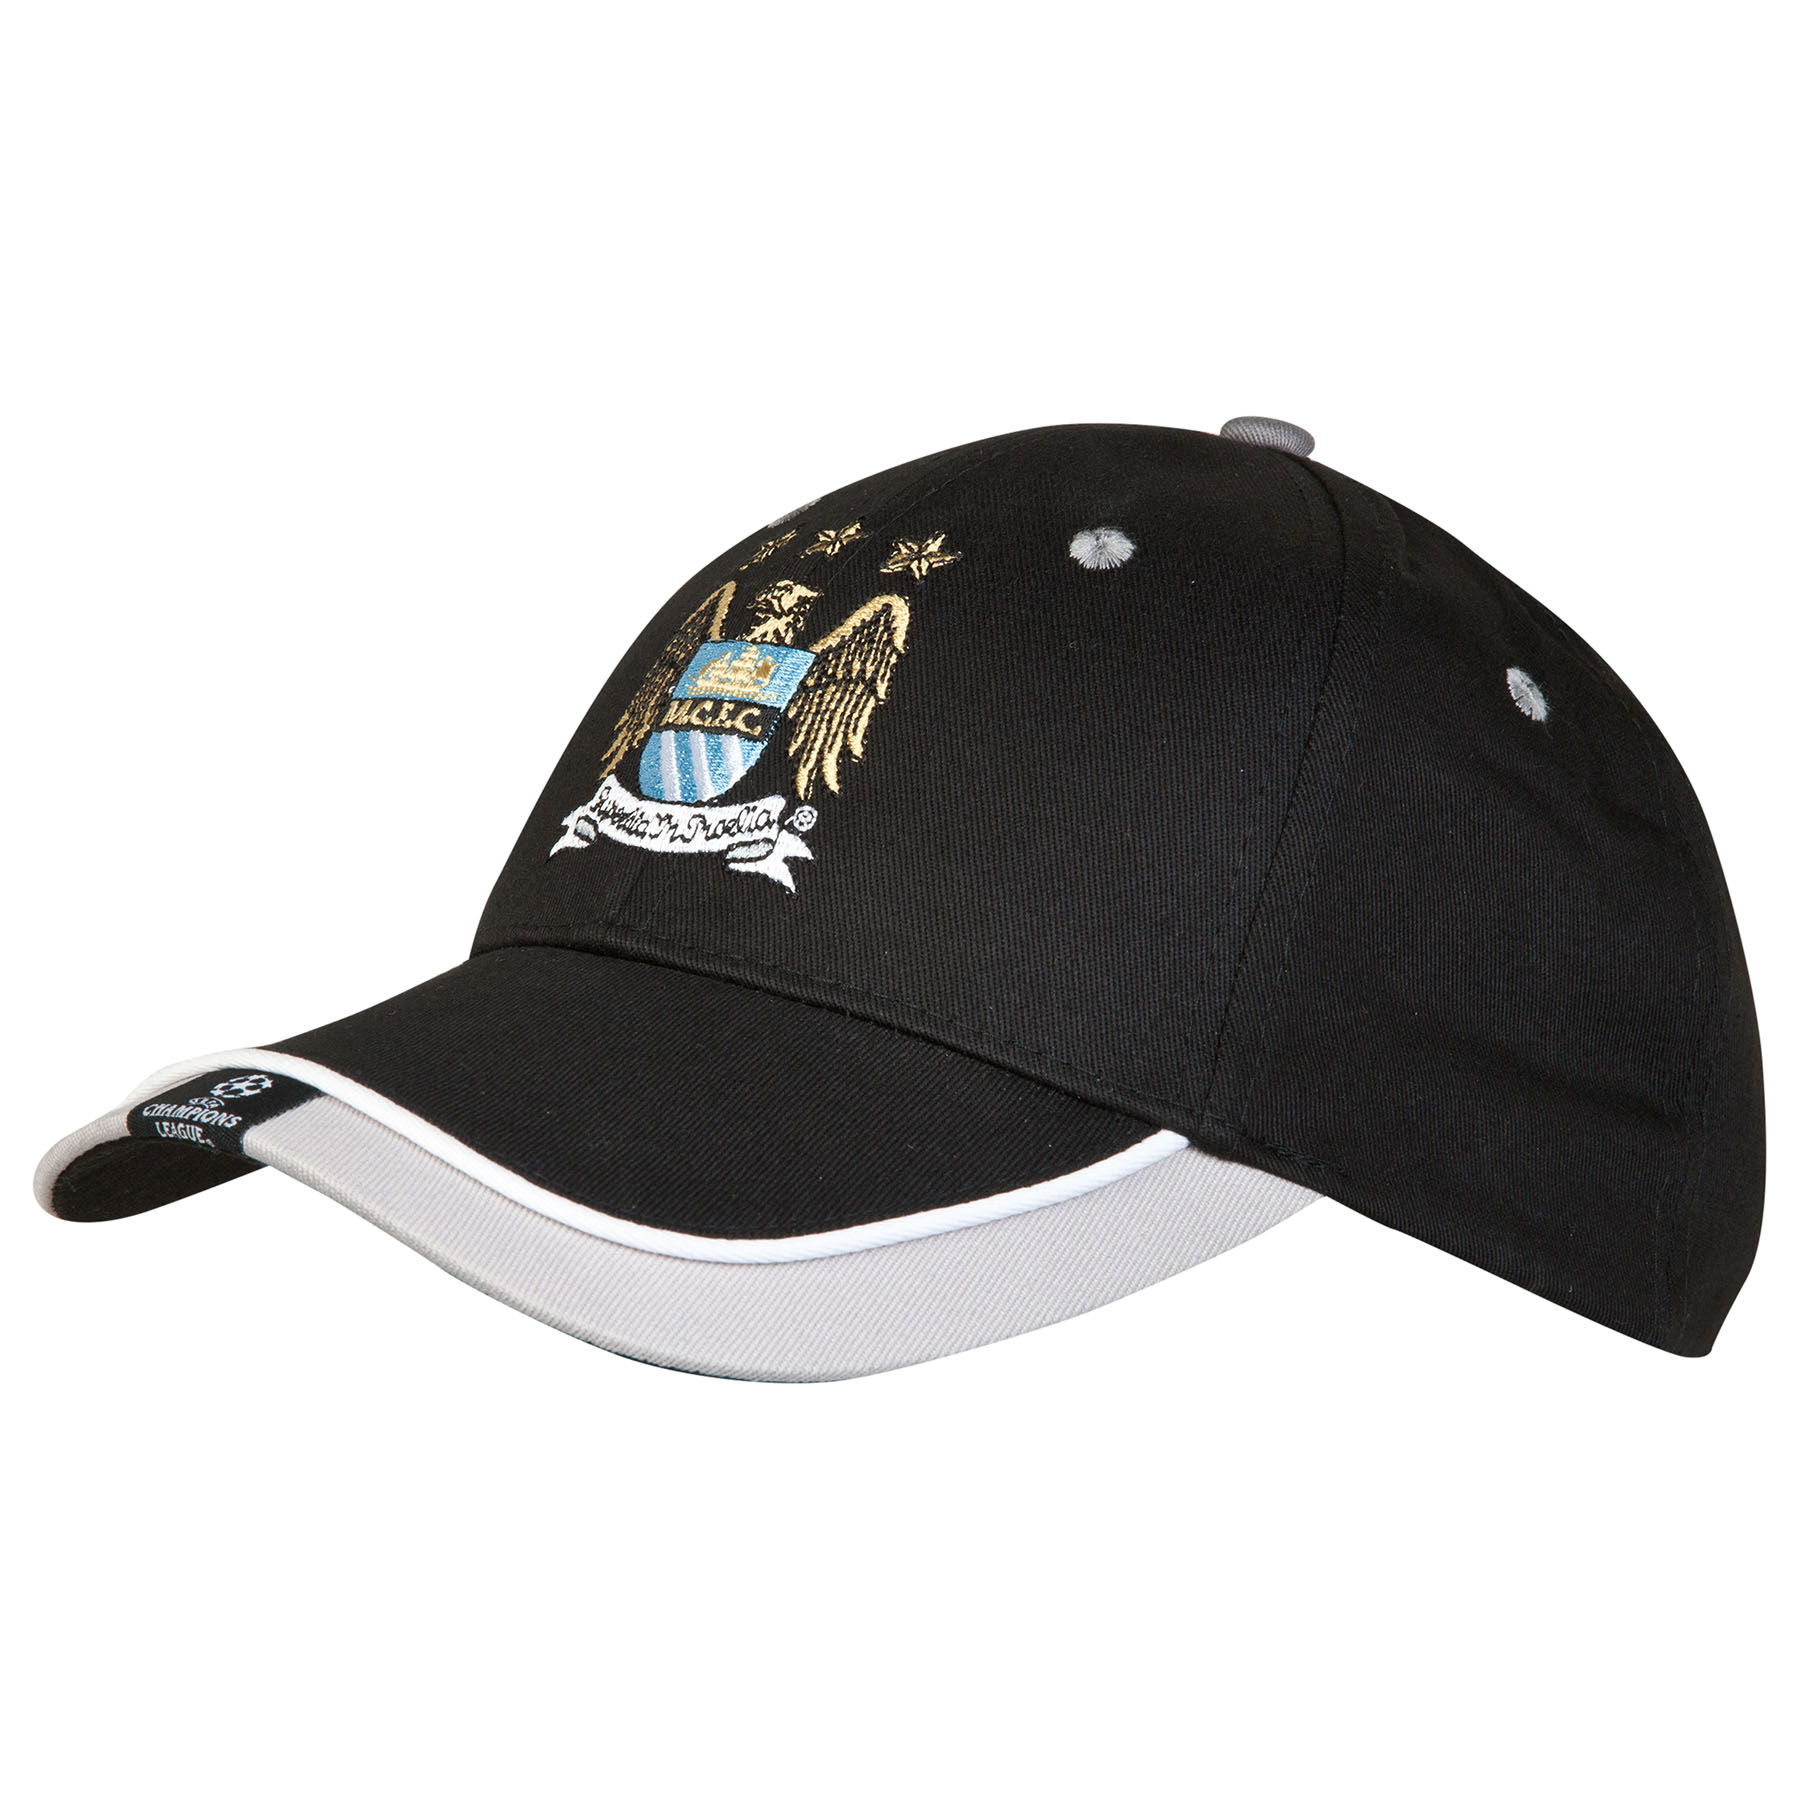 Manchester City UCL Baseball Cap - Black - Adult